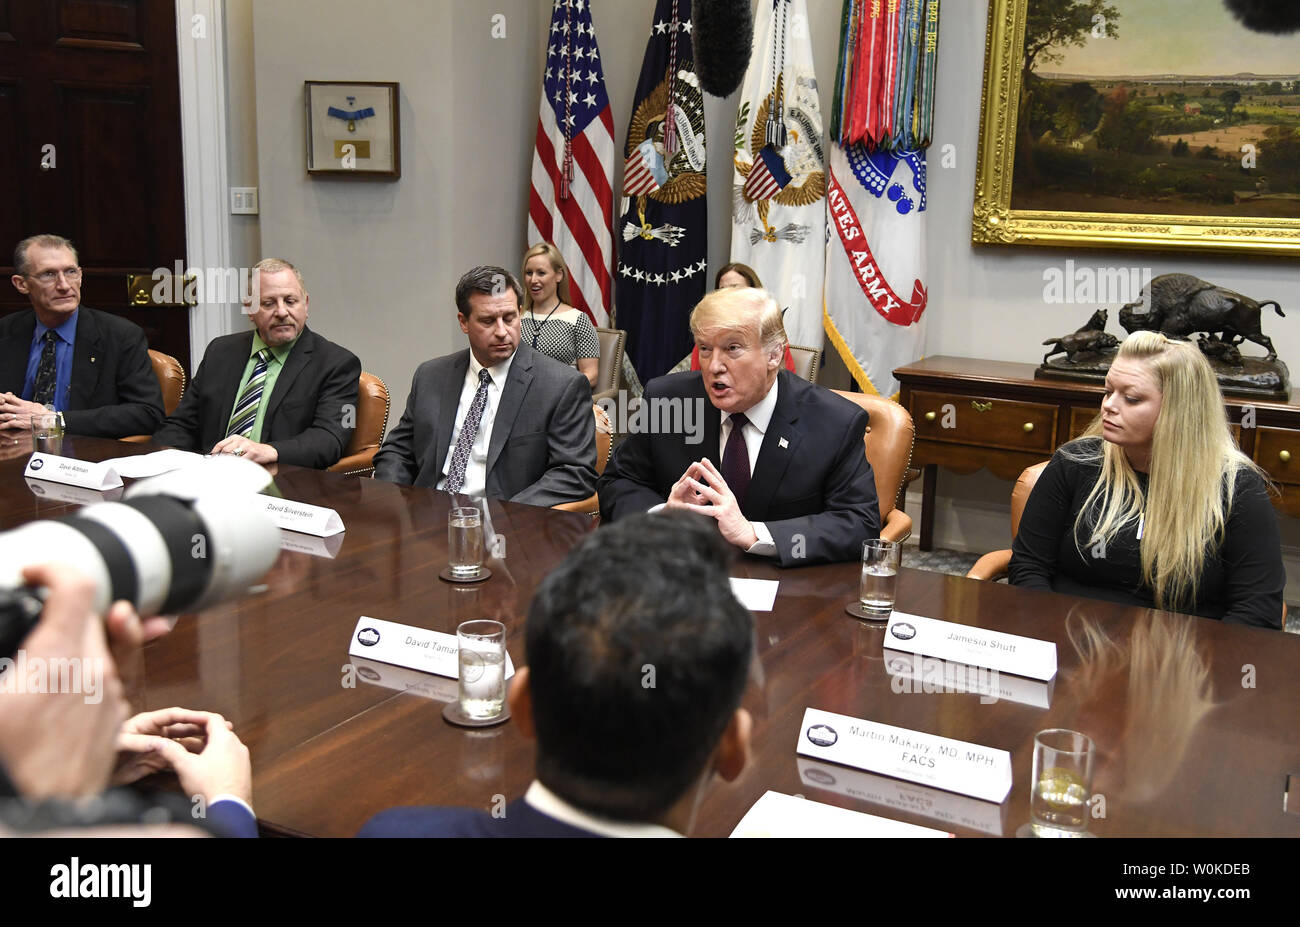 Trump Round Table.President Donald Trump C Makes Remarks During A Roundtable